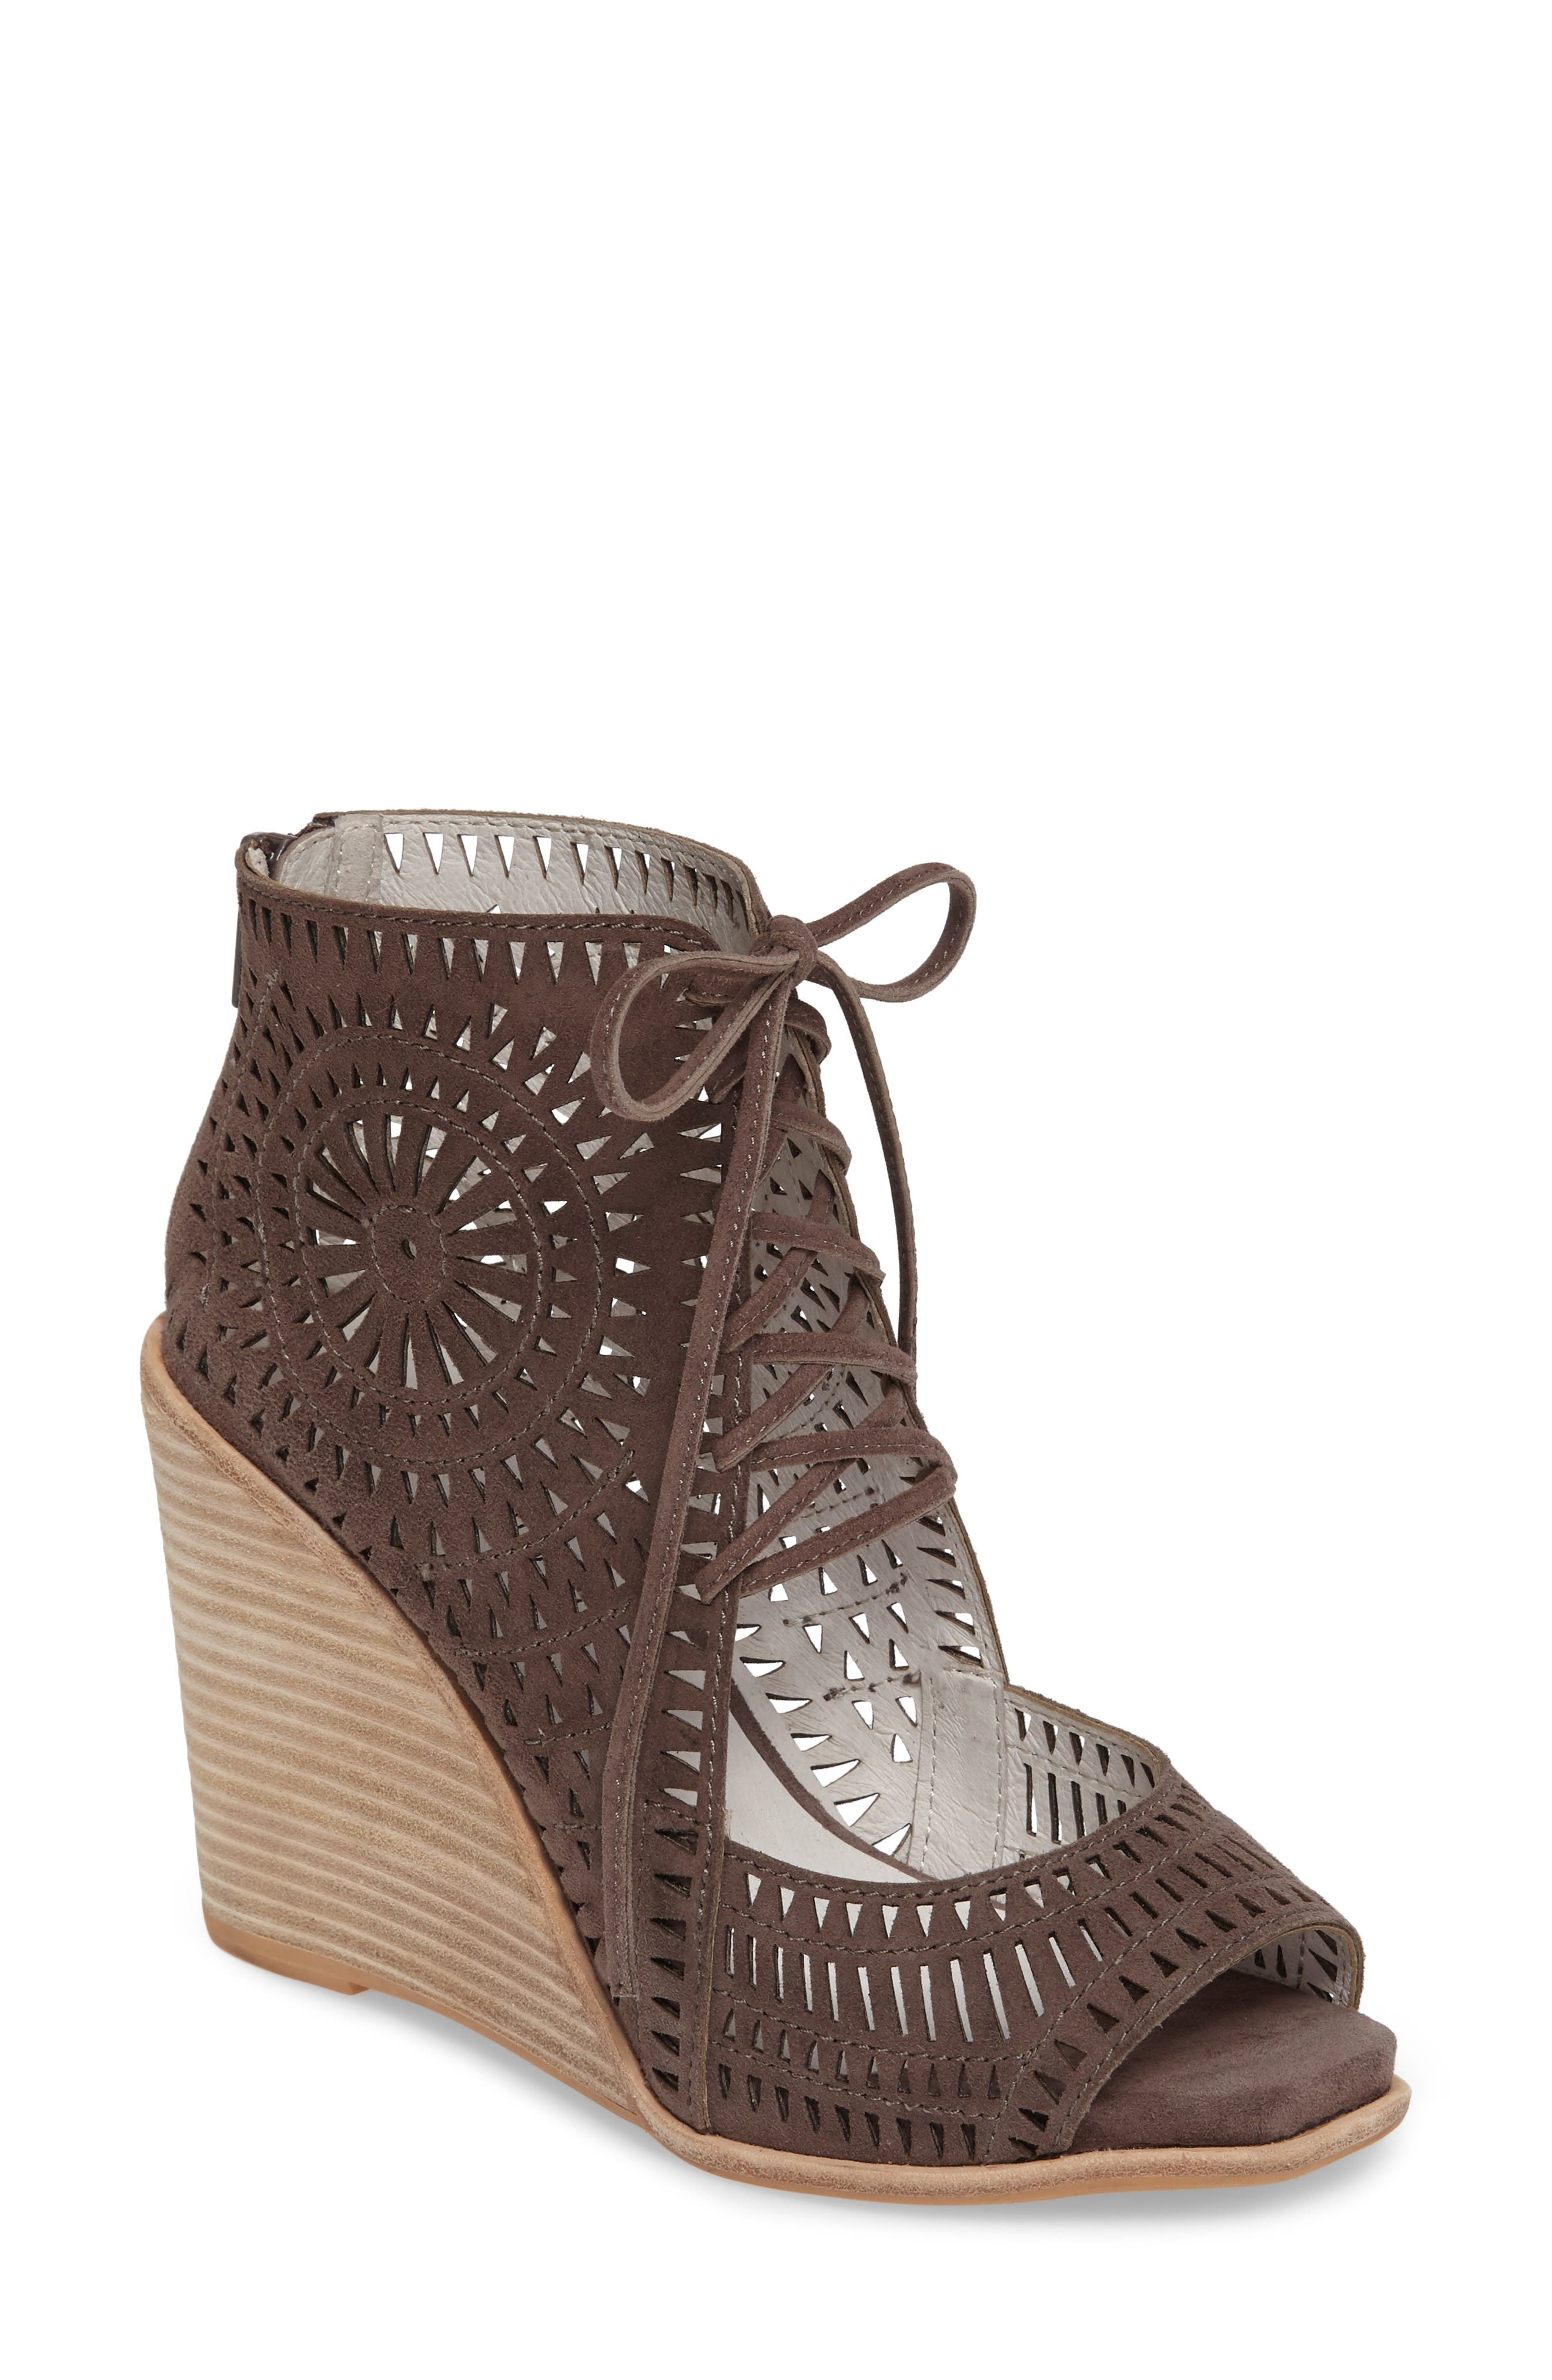 JEFFREY CAMPBELL Rayos Perforated Wedge Sandal, Main, color, 200